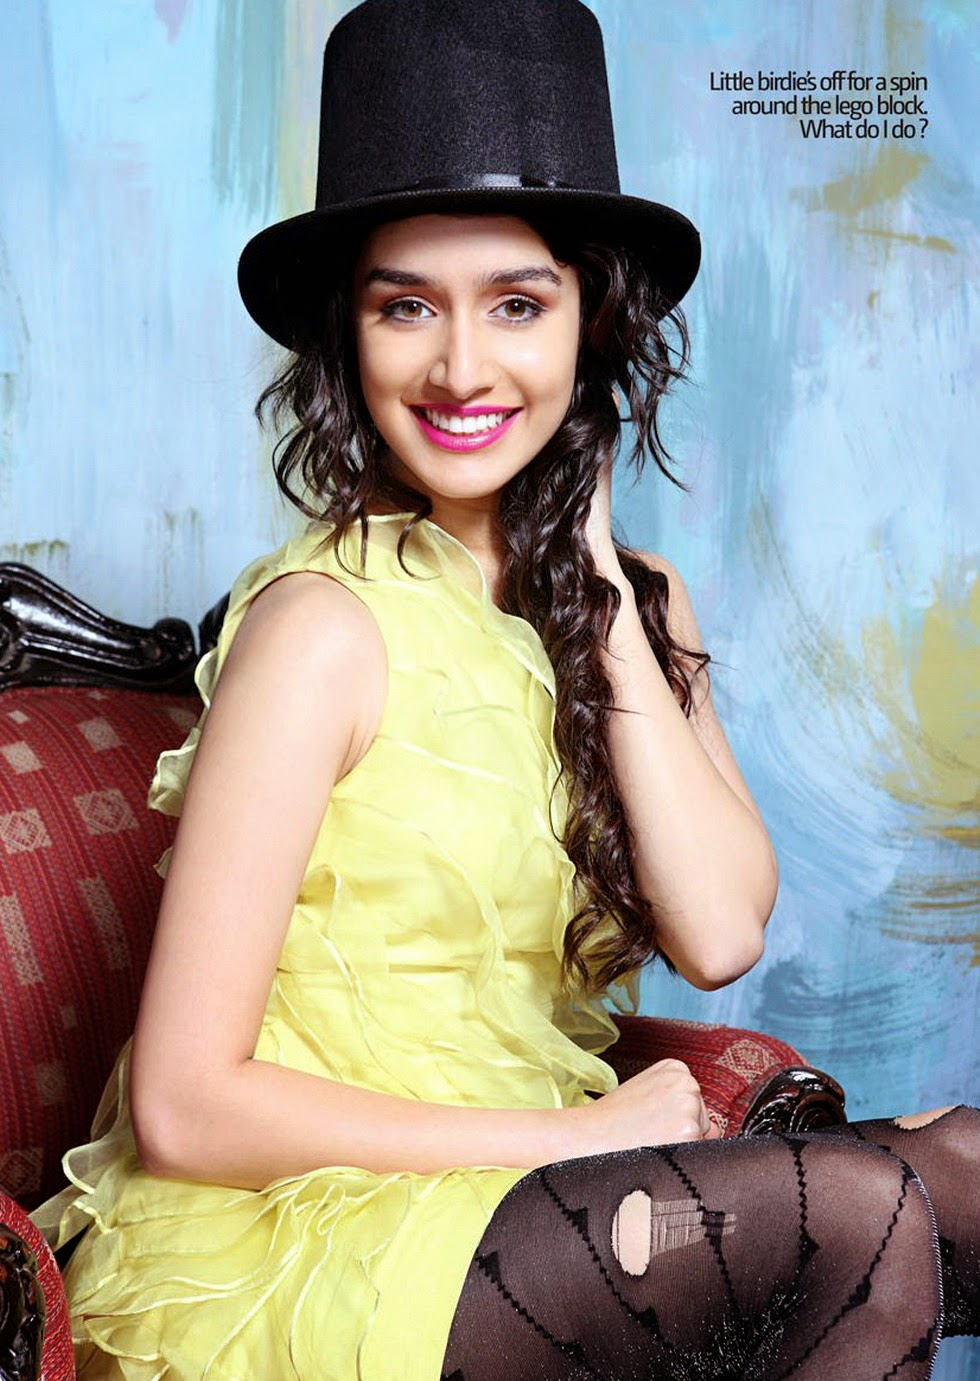 shraddha kapoor latest wallpapers - new auto wallpapers